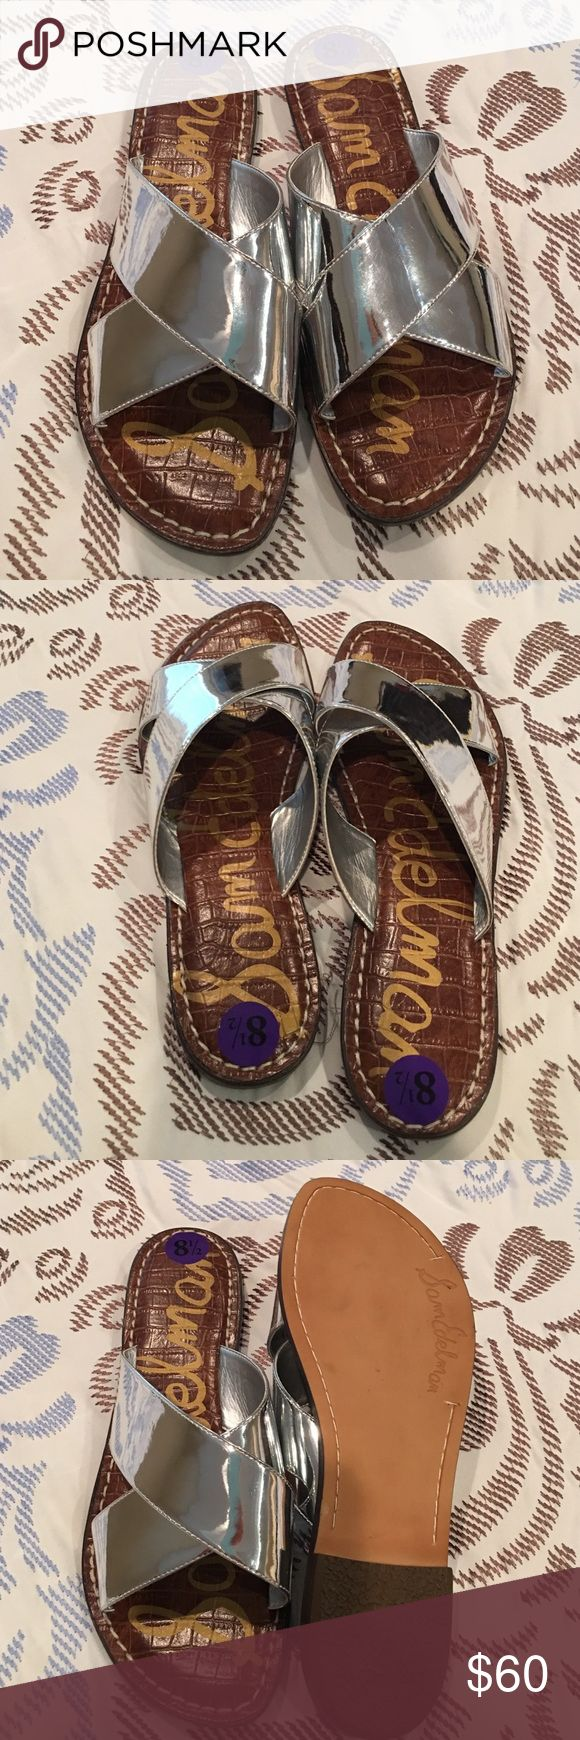 BLACK FRIDAY SALE🎄🎄🎄Sam Edelman sandals SALE PRICE IS FINAL! Beautiful, brand new slide in sandals. These sandals are soft and comfy for all day wear! They are an adorable addition to any wardrobe. They have never been worn only tried on. NO TRADES Sam Edelman Shoes